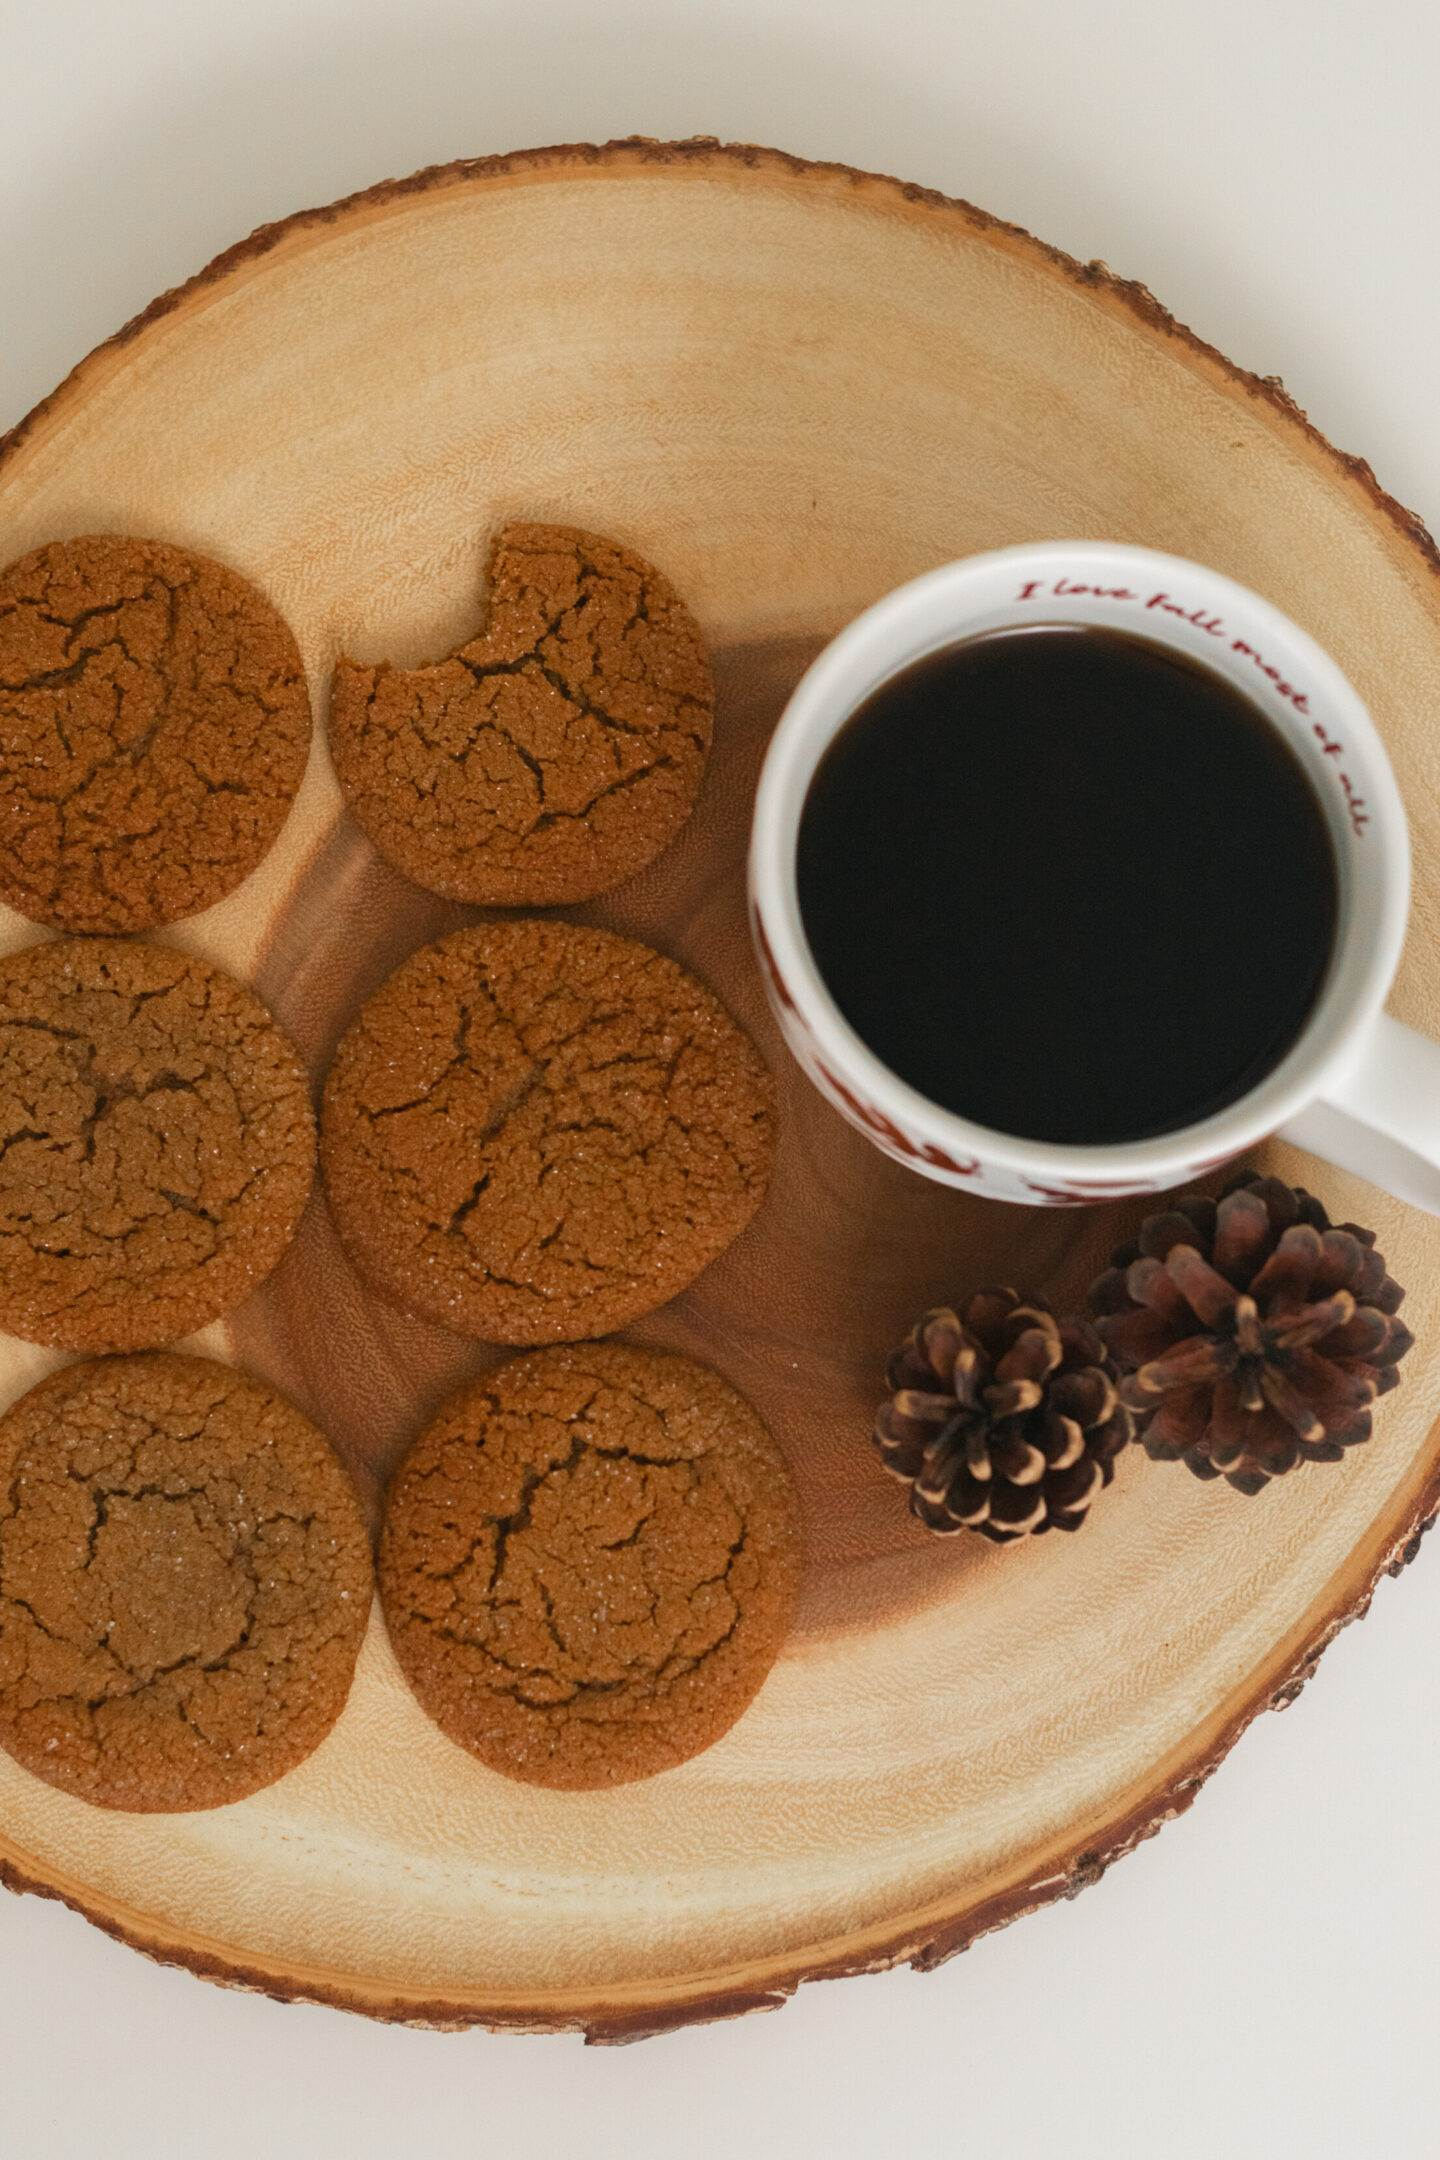 six crinkled molasses cookies next to a mug of black coffee